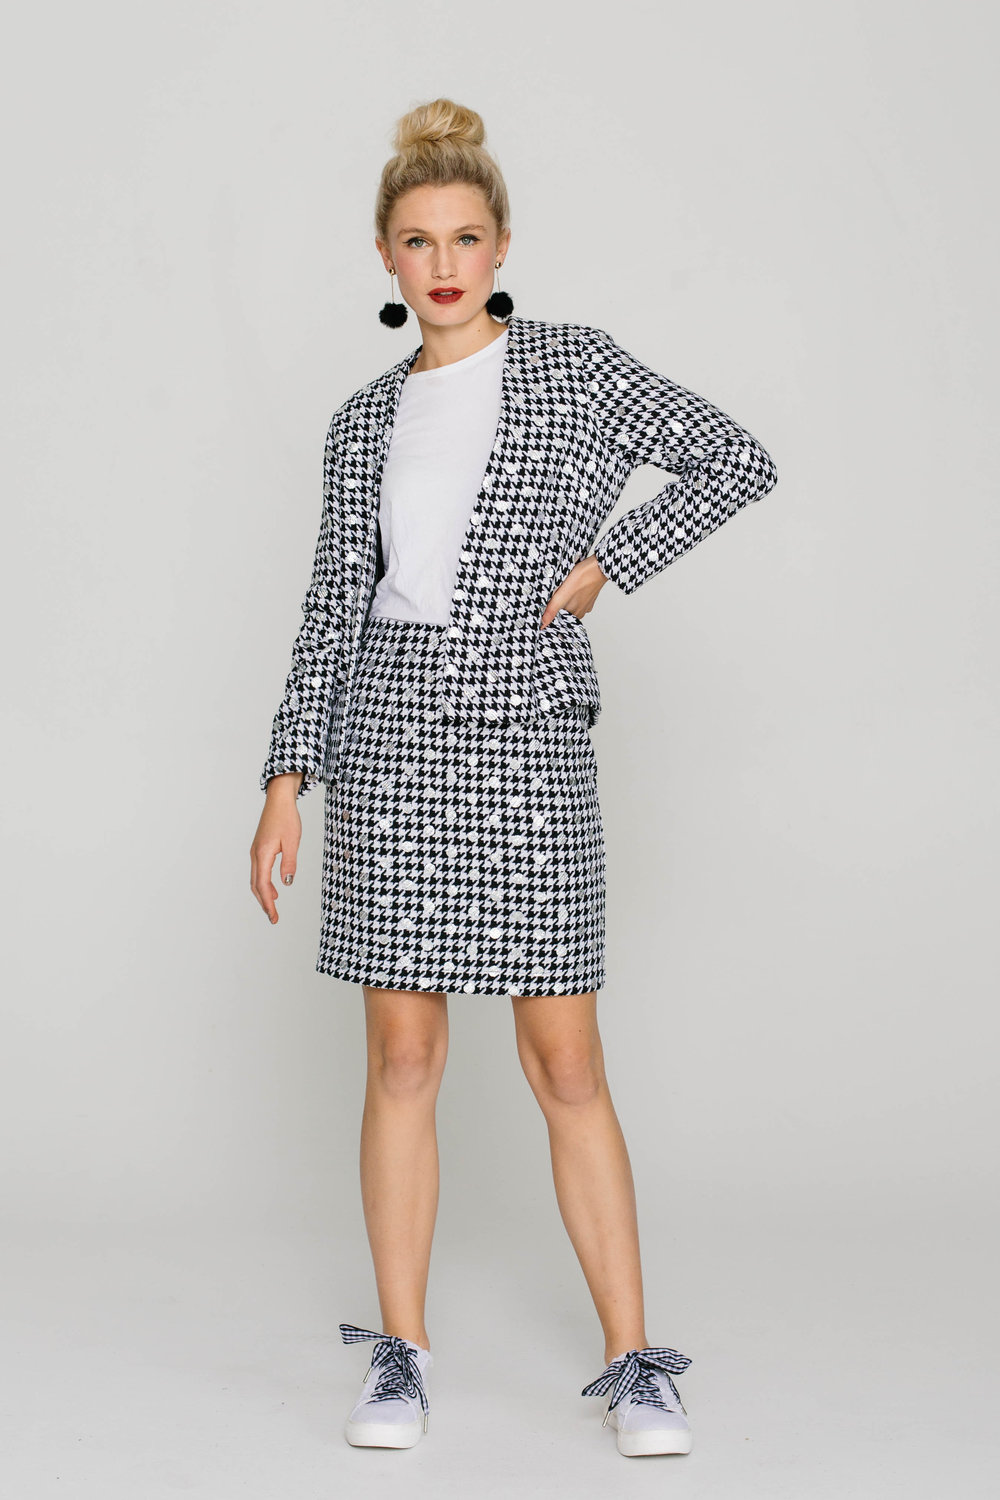 5842W Bowie Jacket Chanel Silver 5740W Straight Skirt Chanel Silver